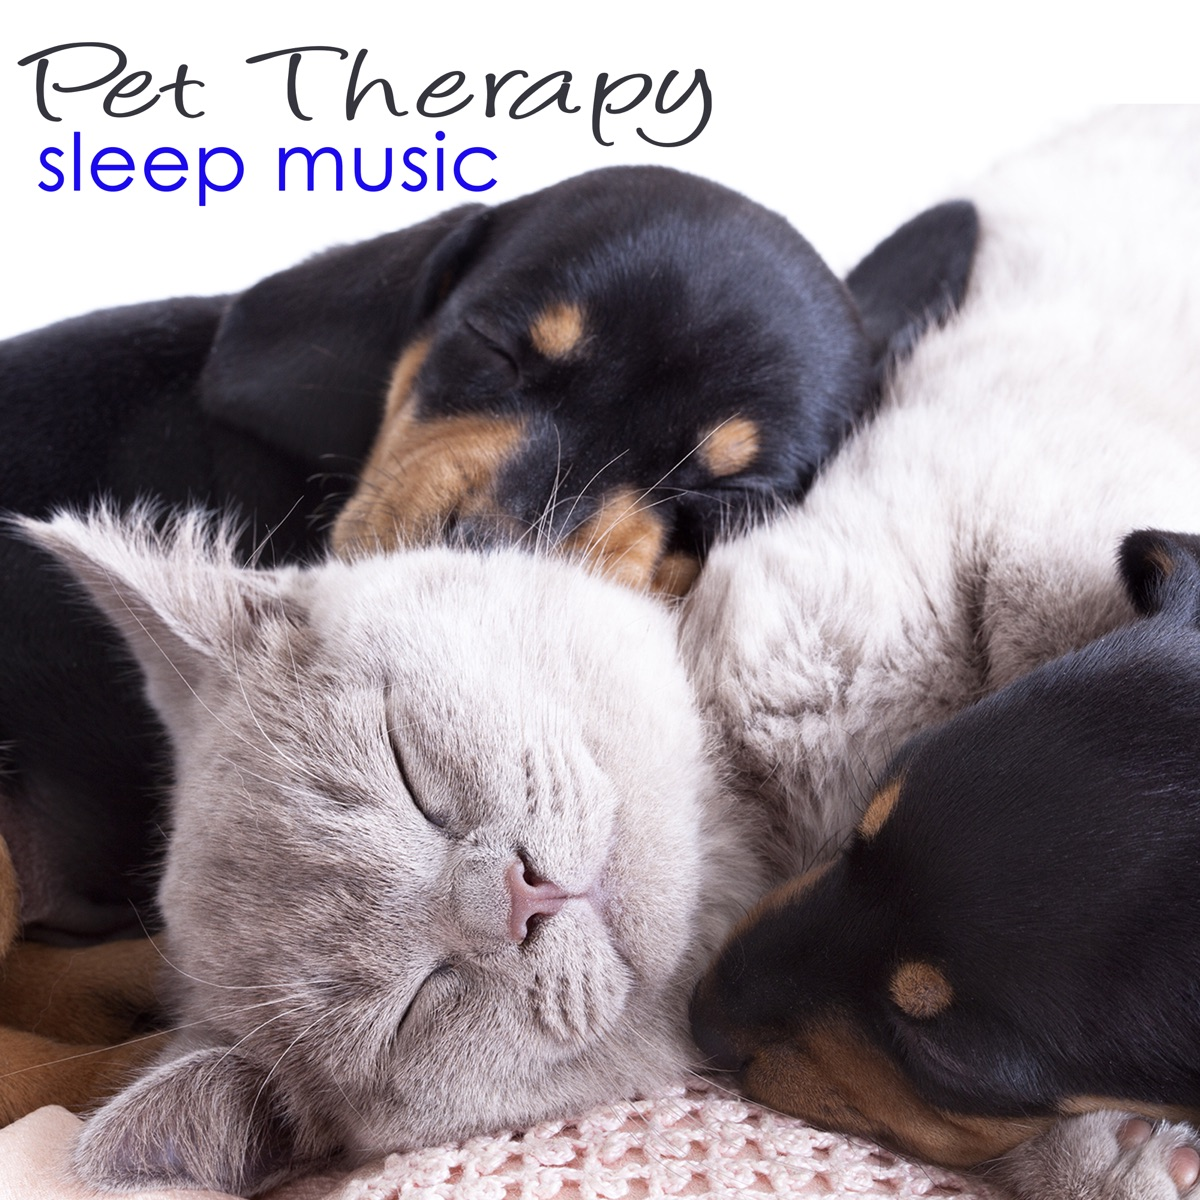 Pet Therapy Sleep Music – Sleeping Animals Healing Music for